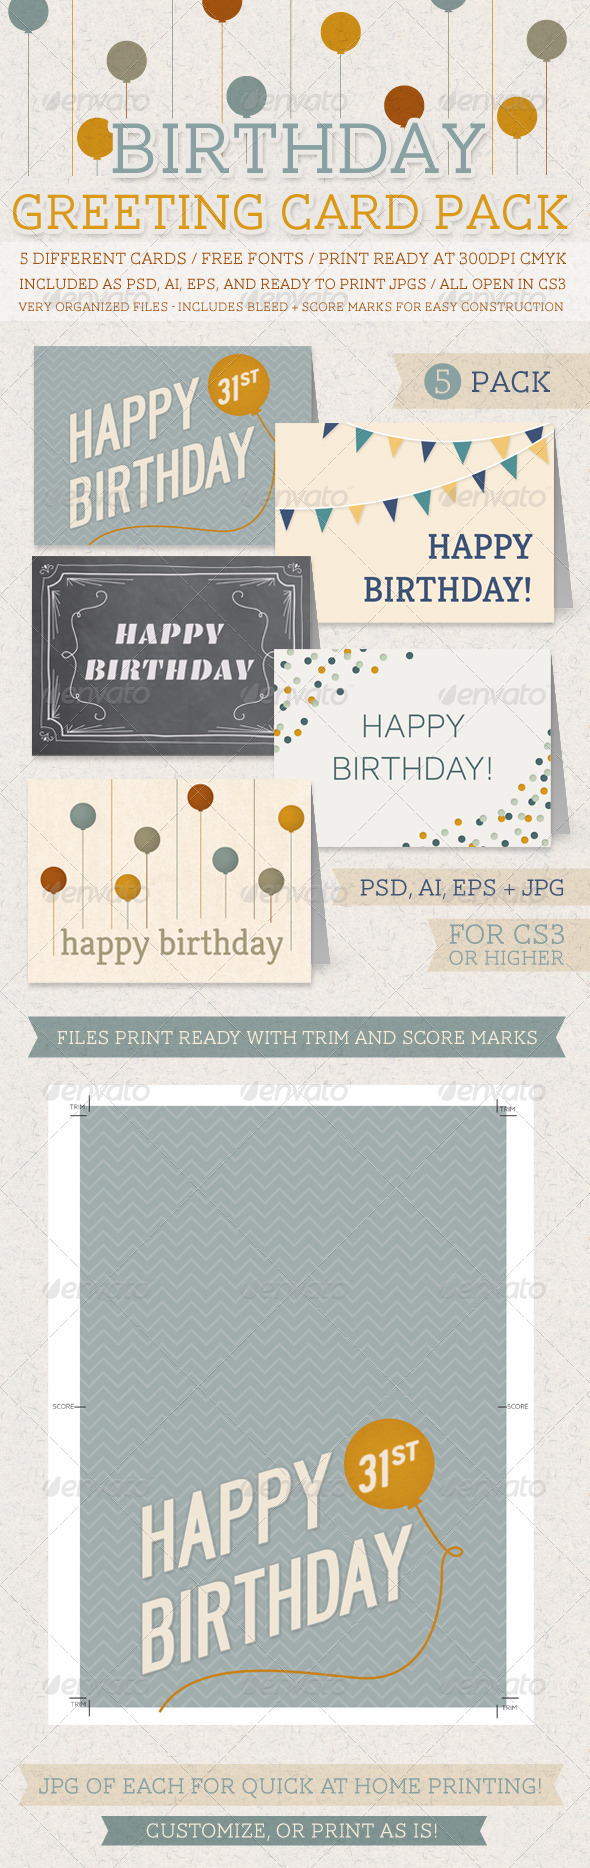 Birthday Greeting Card Pack - Birthday Greeting Cards